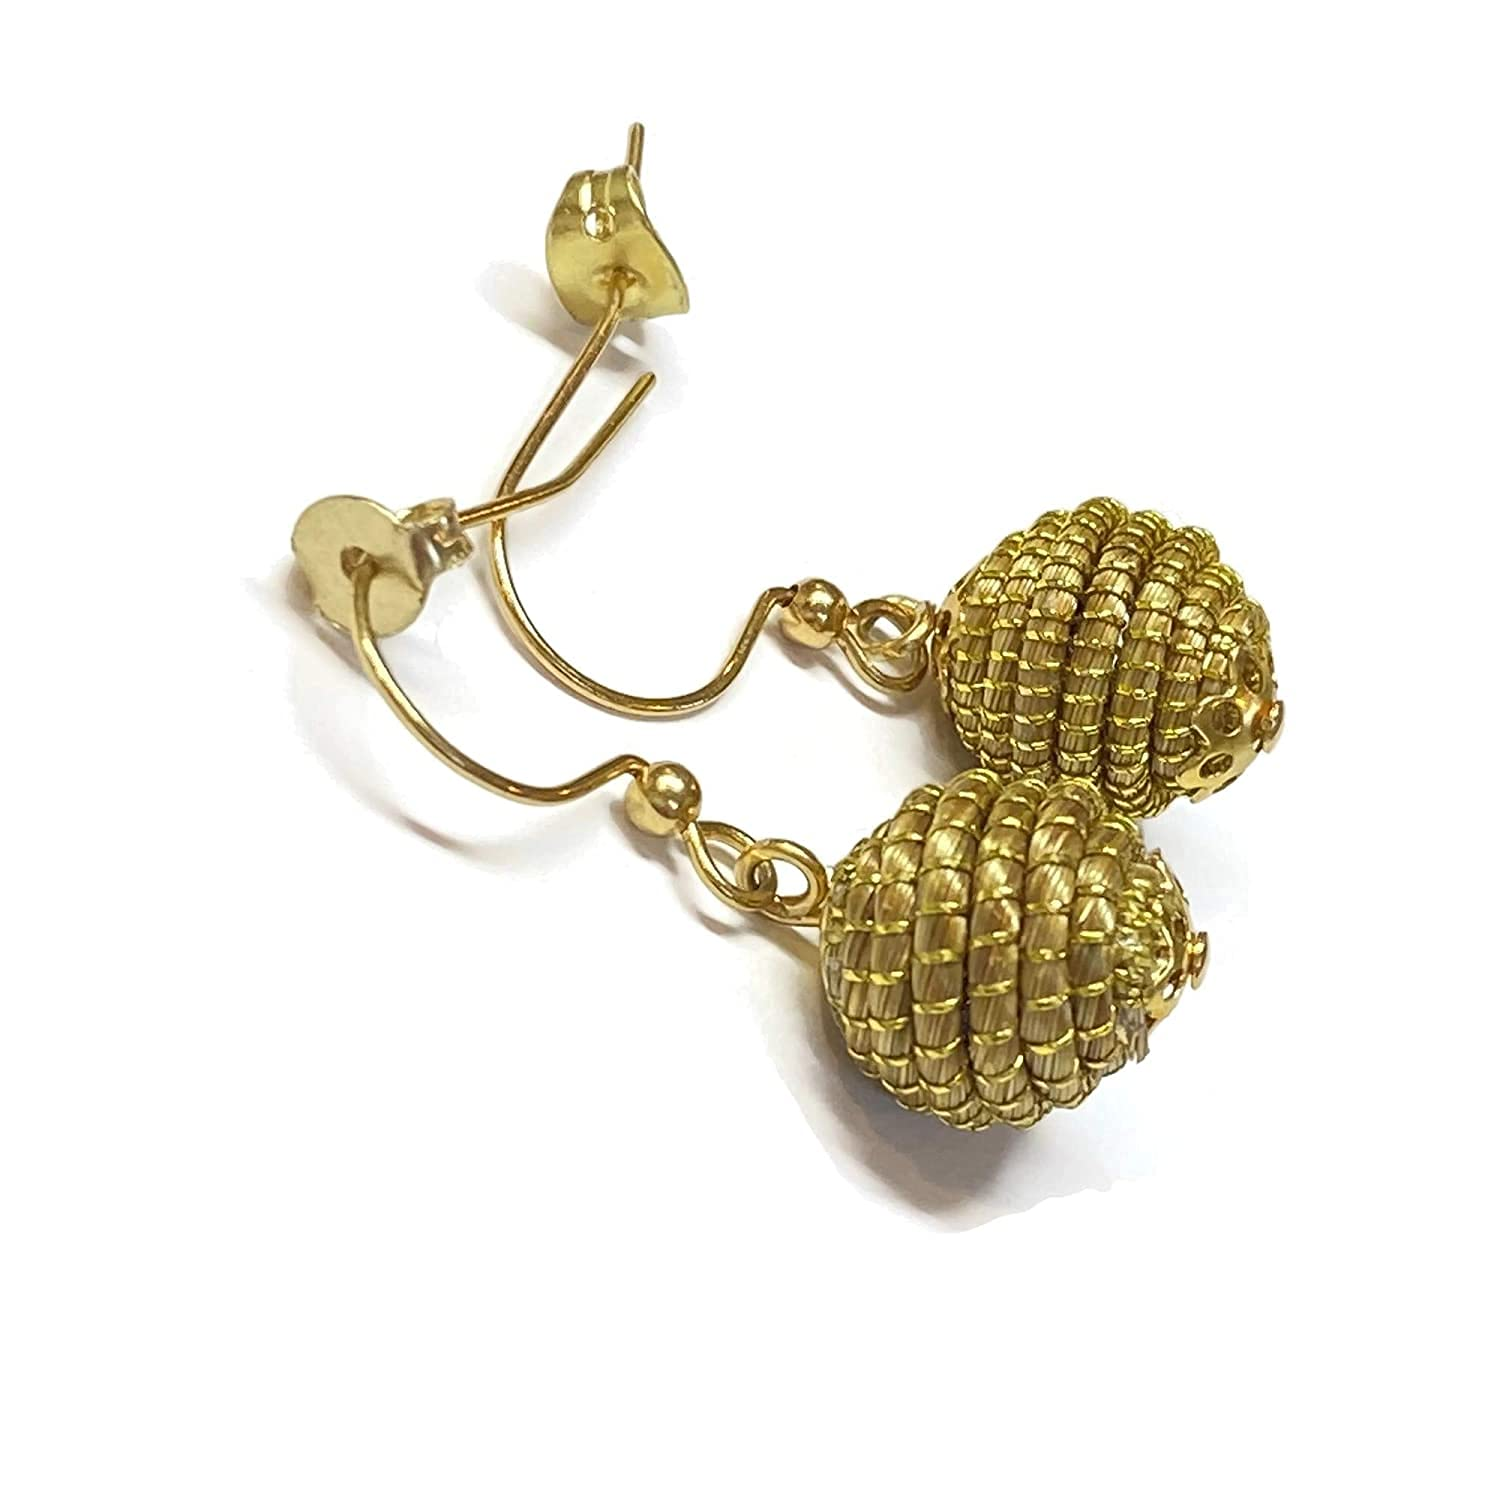 Handmade Super popular specialty store Drop and Dangle Beads Now free shipping Golden Earrings For Grass a Women